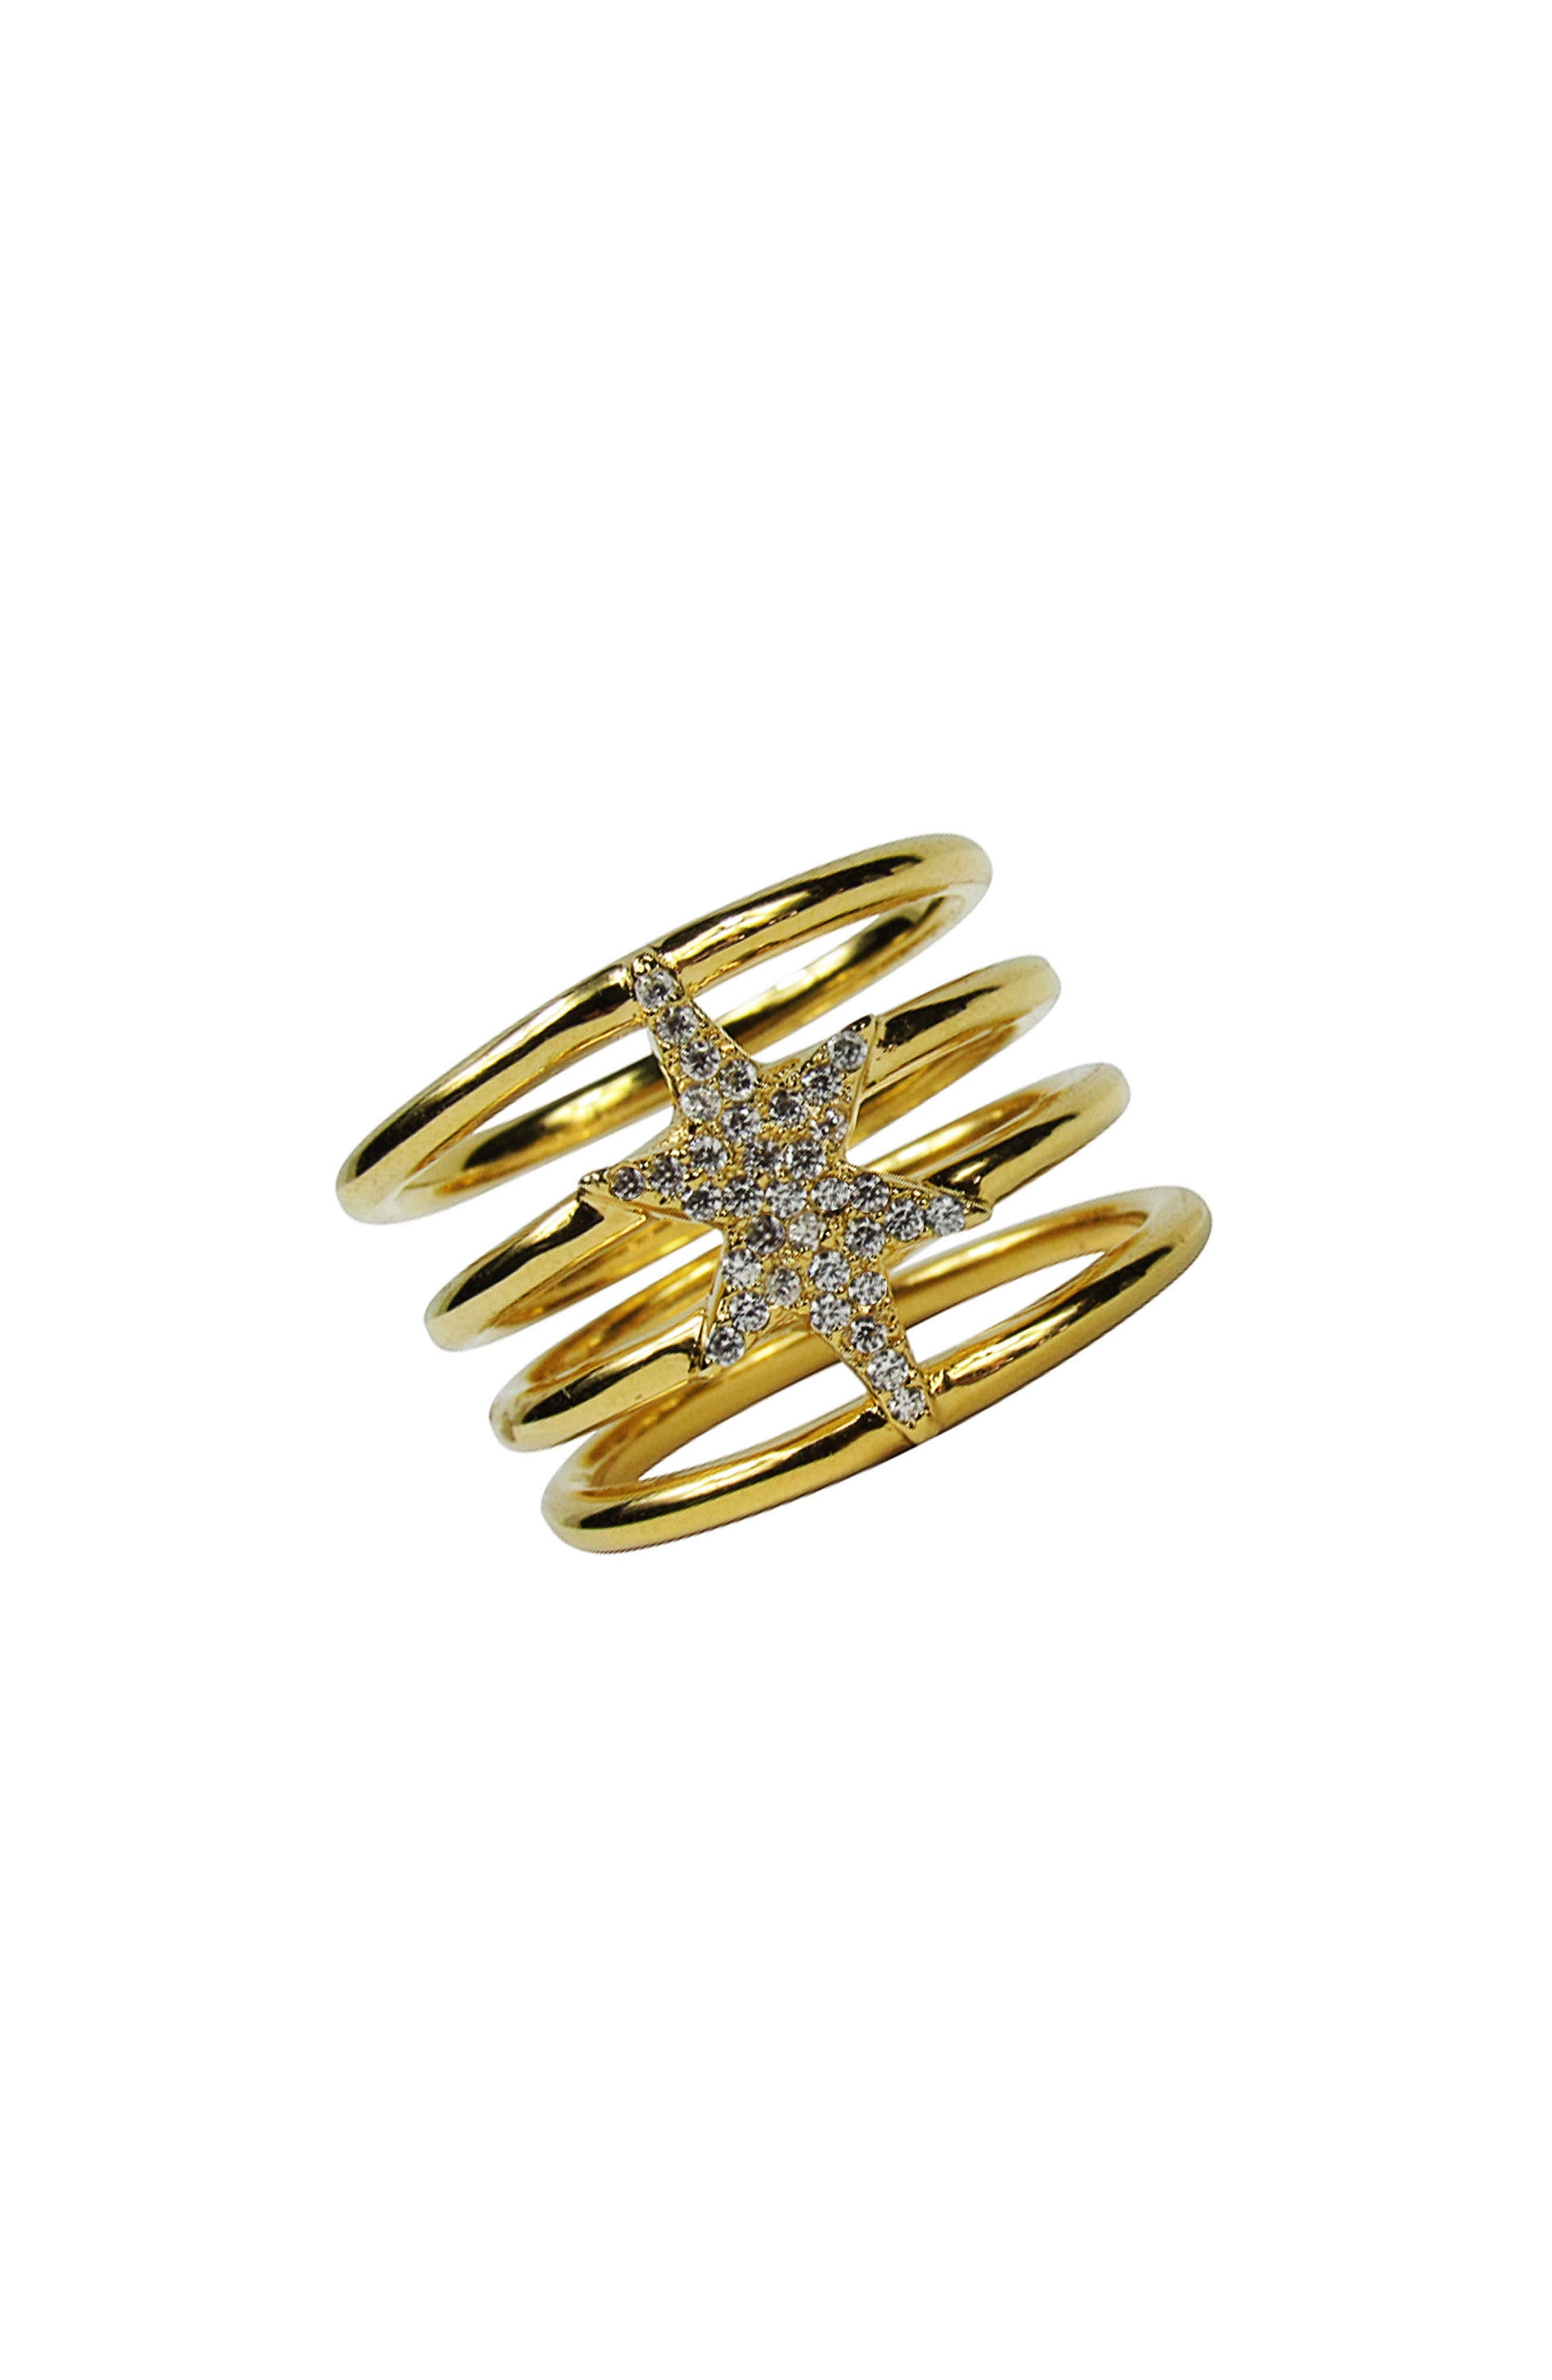 North Star Statement Ring,                             Main thumbnail 1, color,                             710